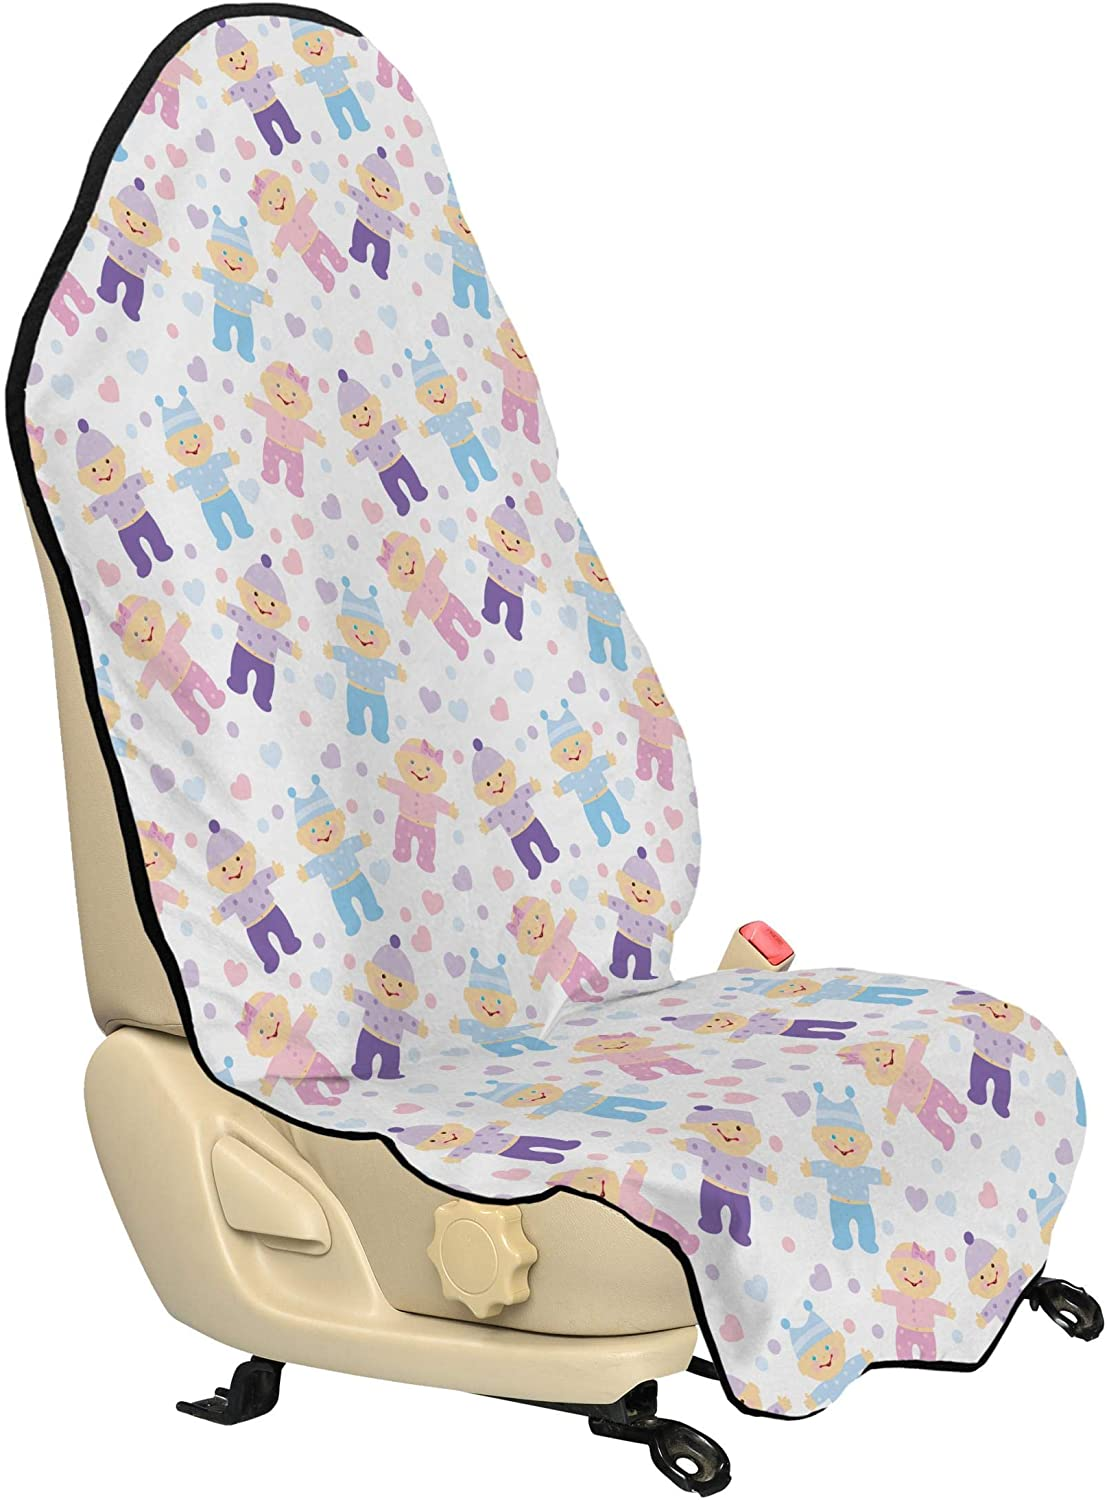 Lunarable Baby Shower Car Seat Hoodie, Hearts and Colorful Dots Background with Newborn Babies Cartoon Characters, Car Seat Cover Protector Non Slip Backing Universal Fit, 30